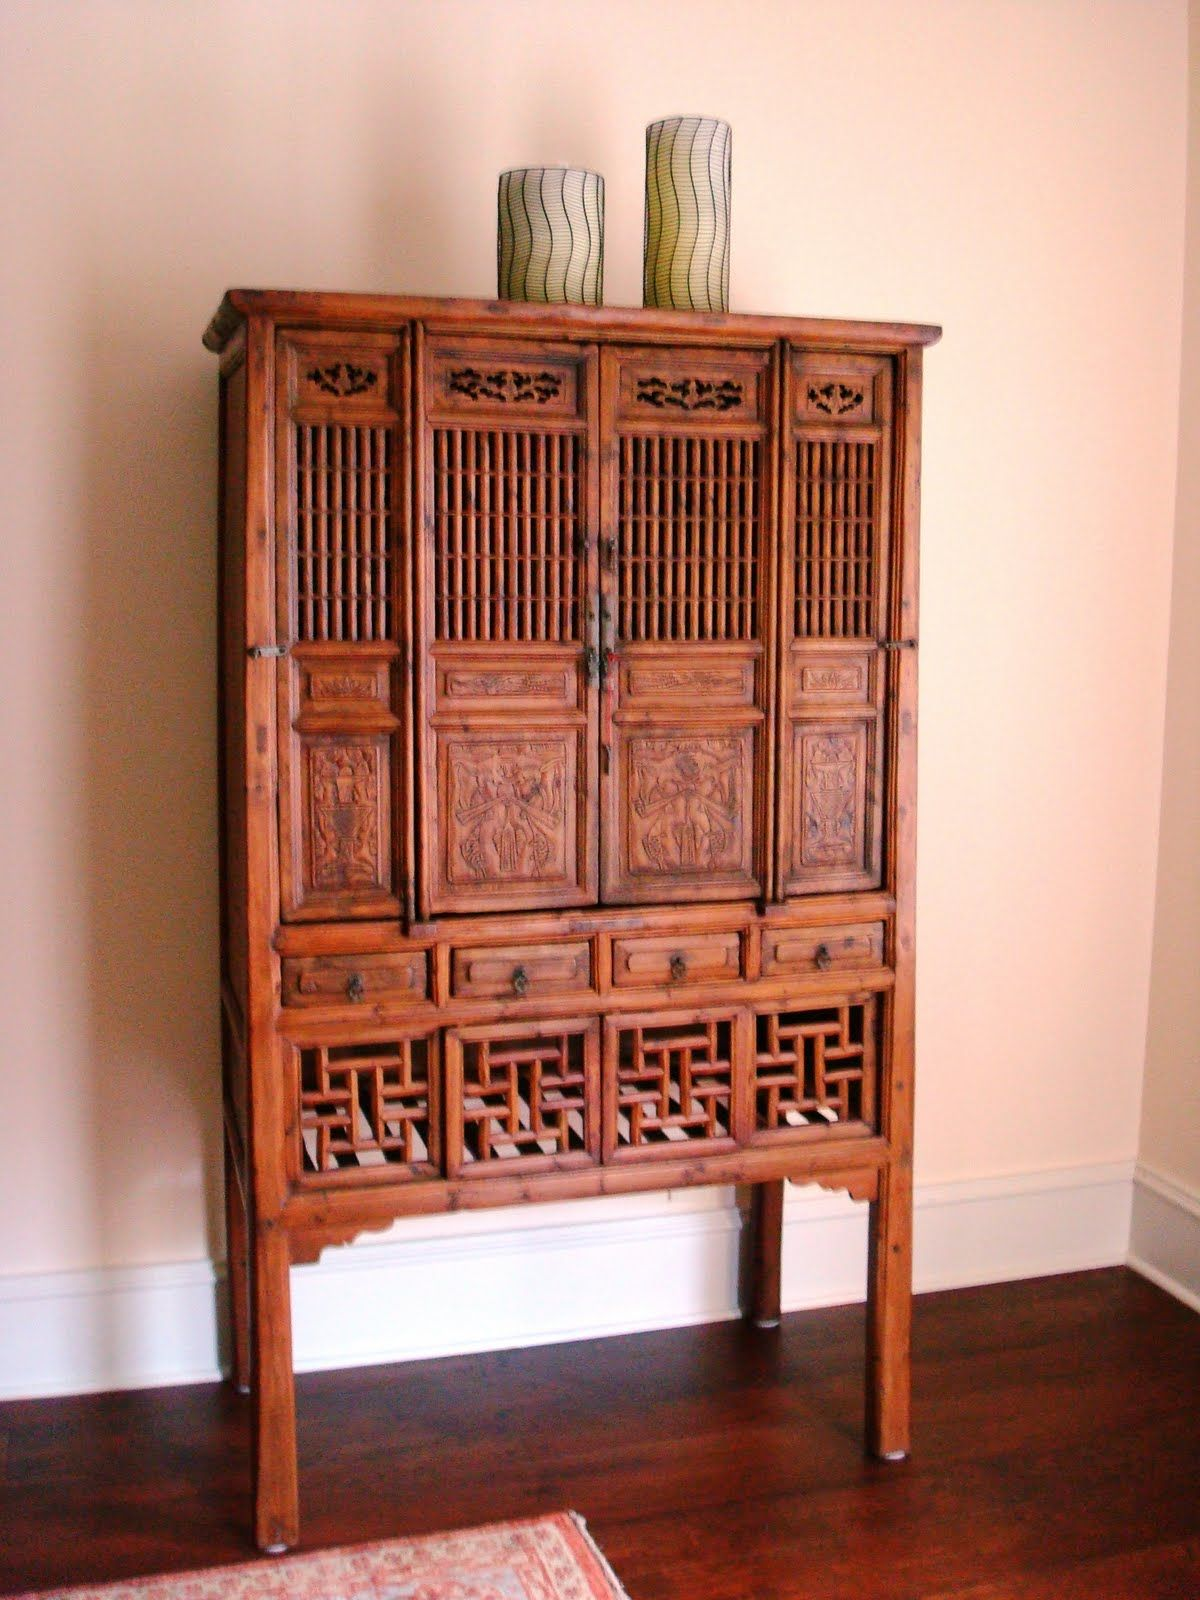 Gracious Interiors Annual Family Wellness Checkup Antique Chinese Furniture Asian Decor Oriental Decor